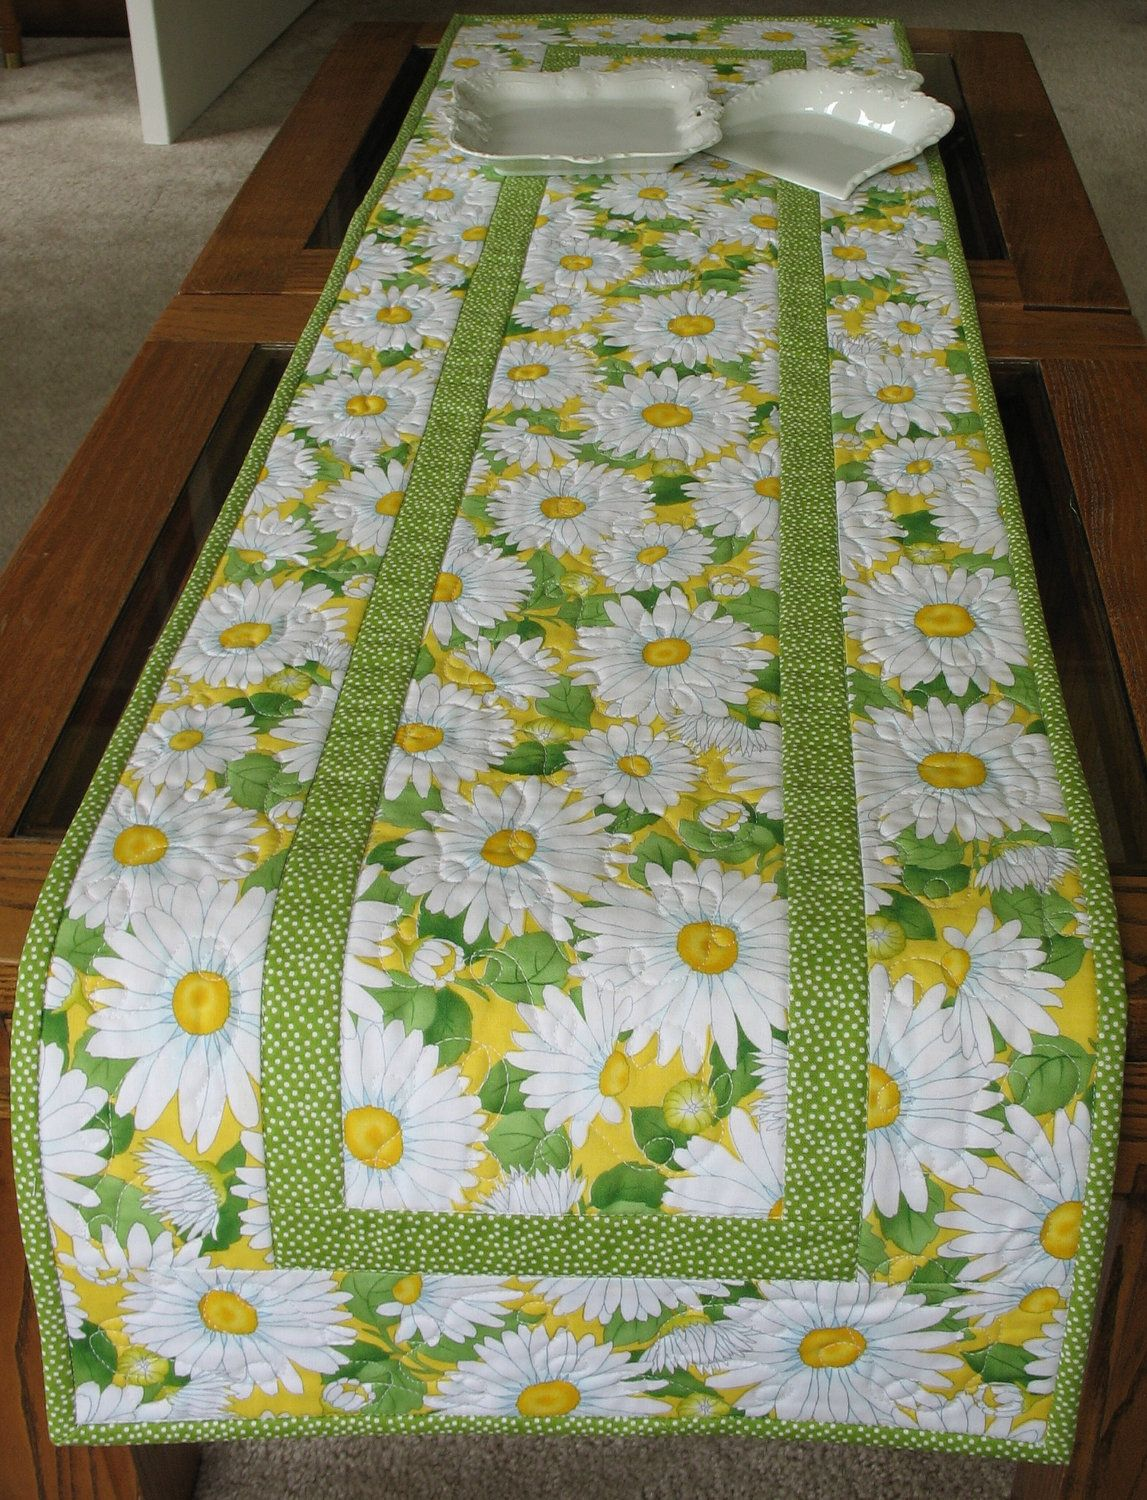 Daisy Table Runner made with Timeless Treasures Fabric | Pinterest ...